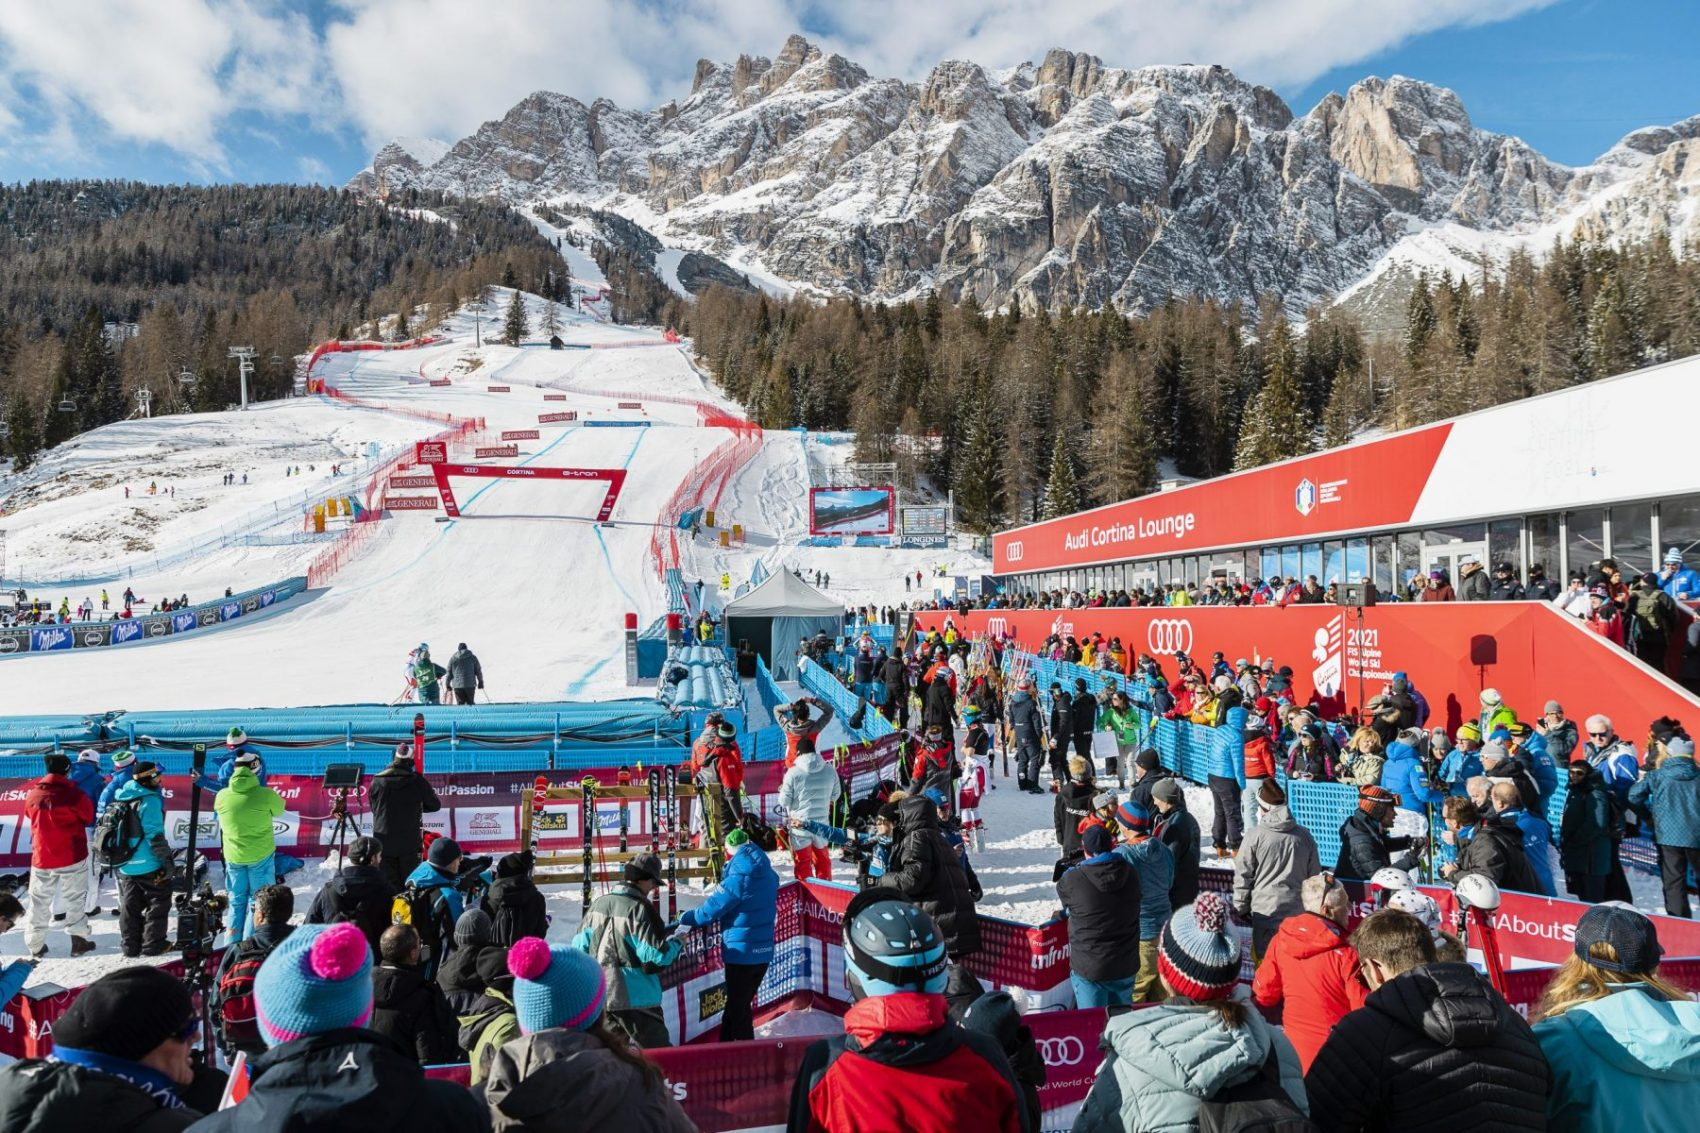 Tofana, ISTA. Cortina d'Ampezzo. Photo: www.bandion.com- 3. Cortina 2021 FIS Alpine World Ski Championships to go ahead.